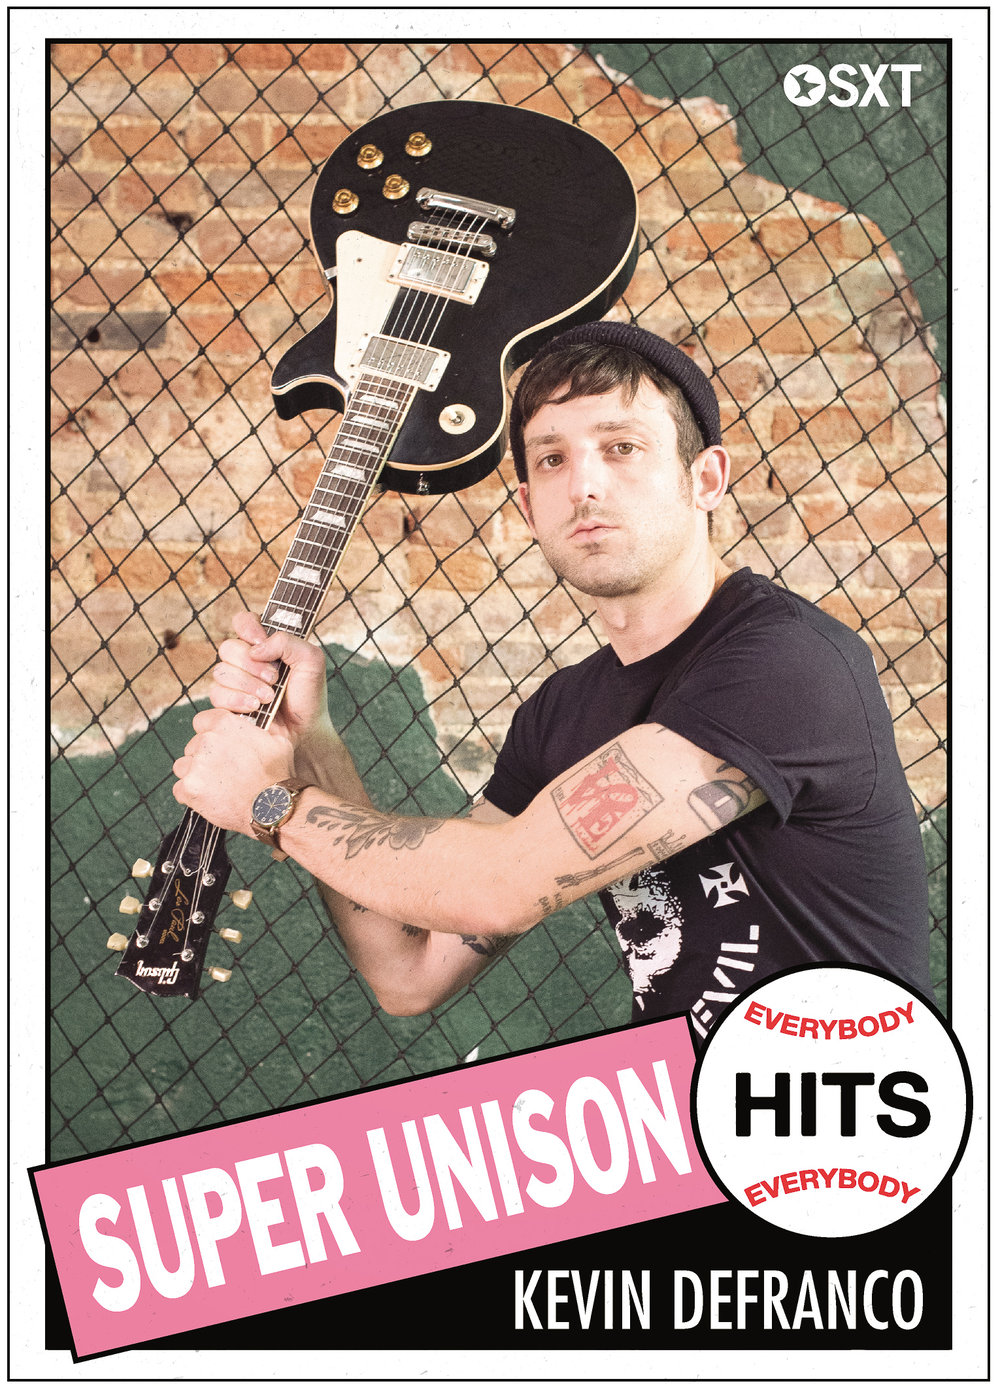 Kevin DeFranco of Super Unison